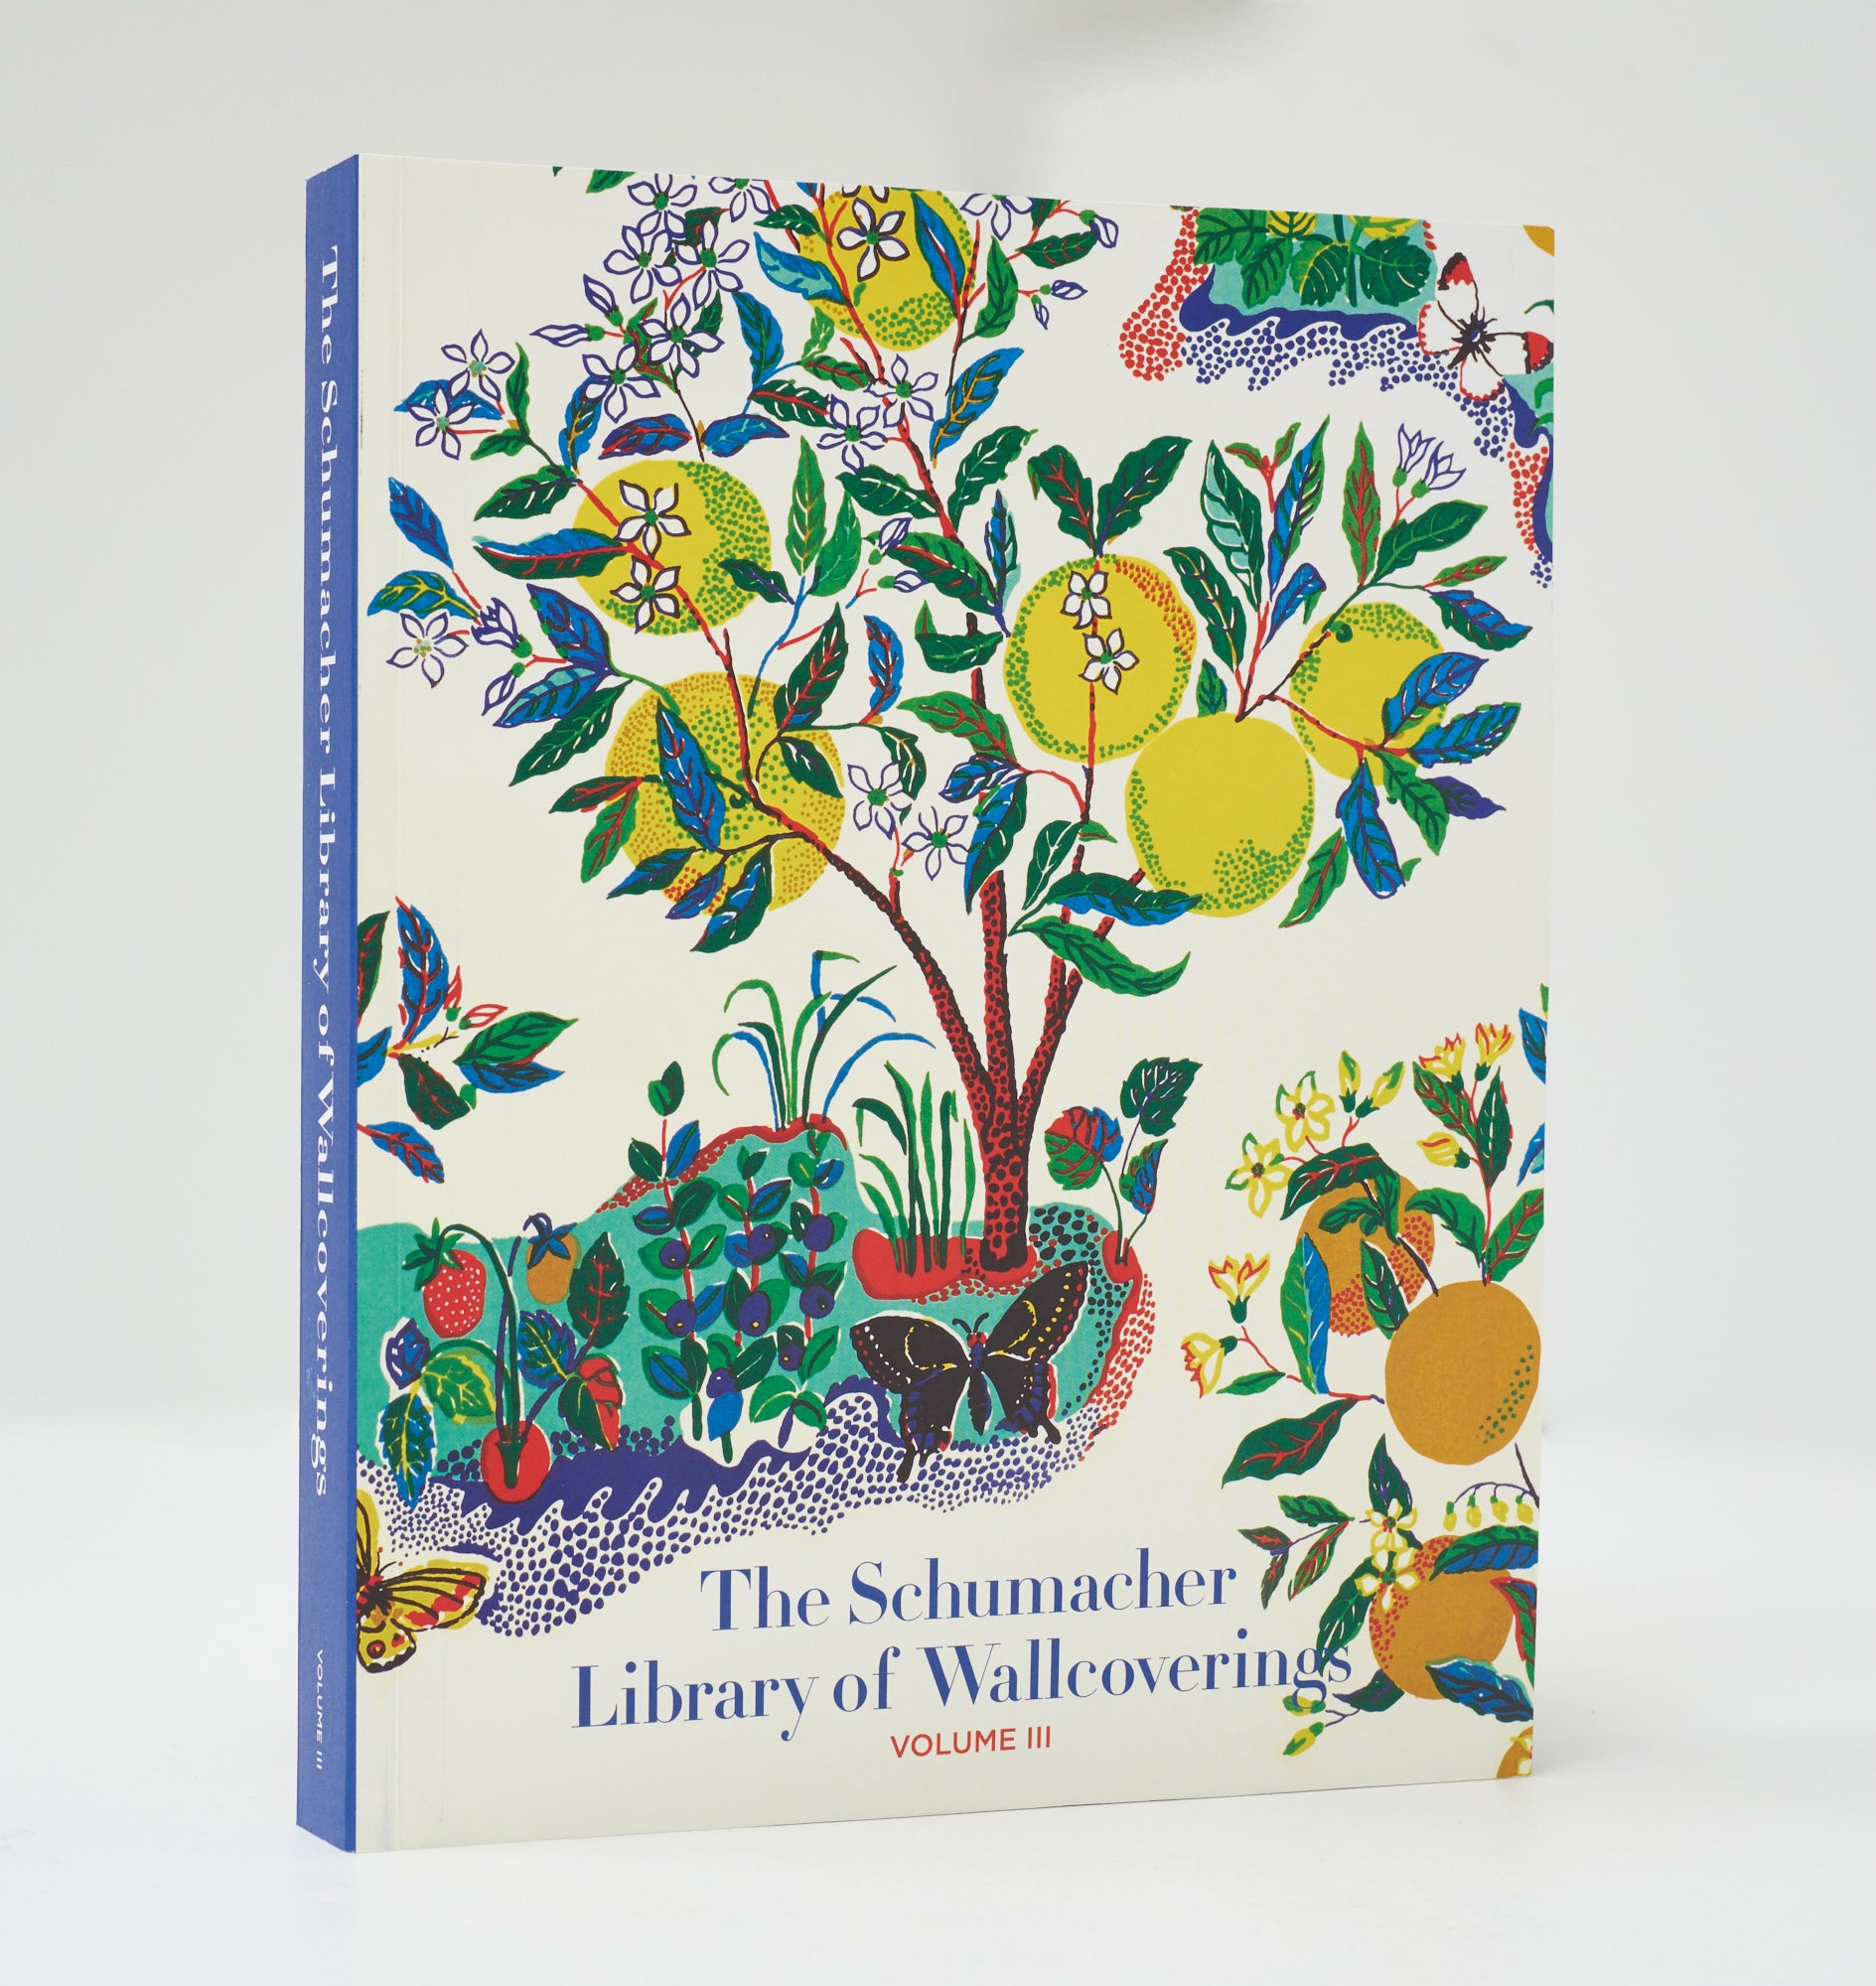 The Schumacher Library of Wallcoverings